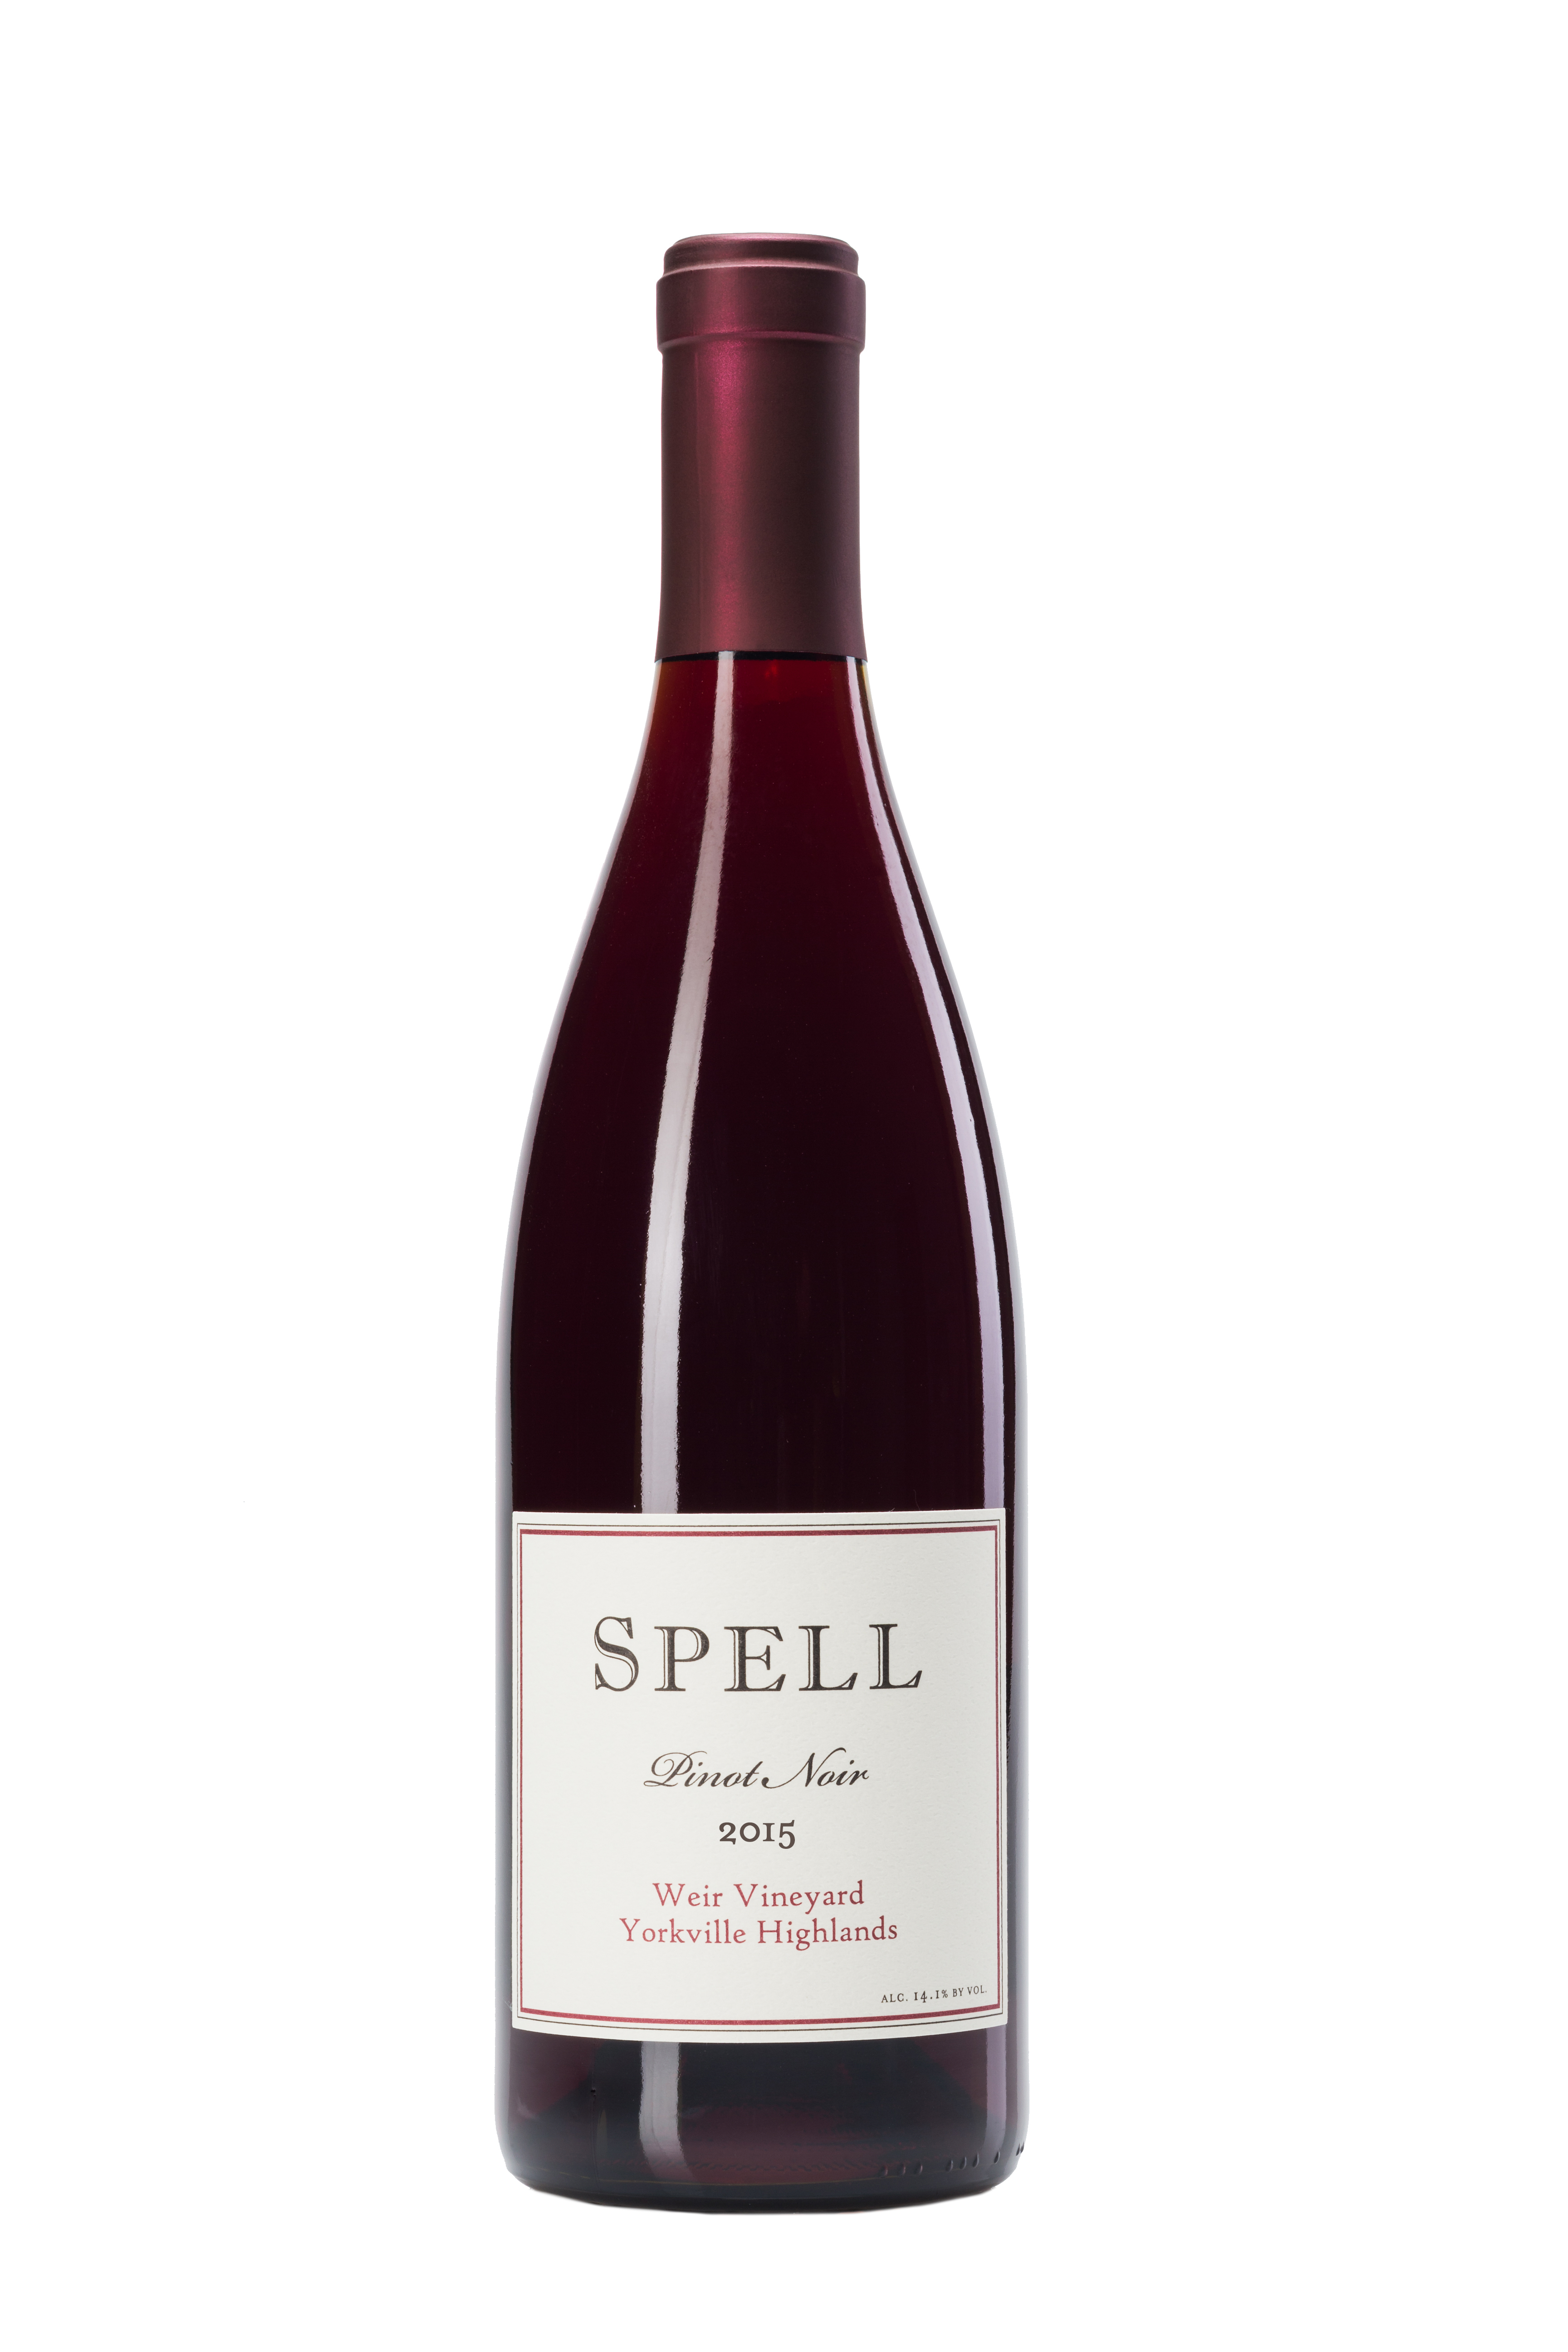 Spell Weir Vineyard 2015